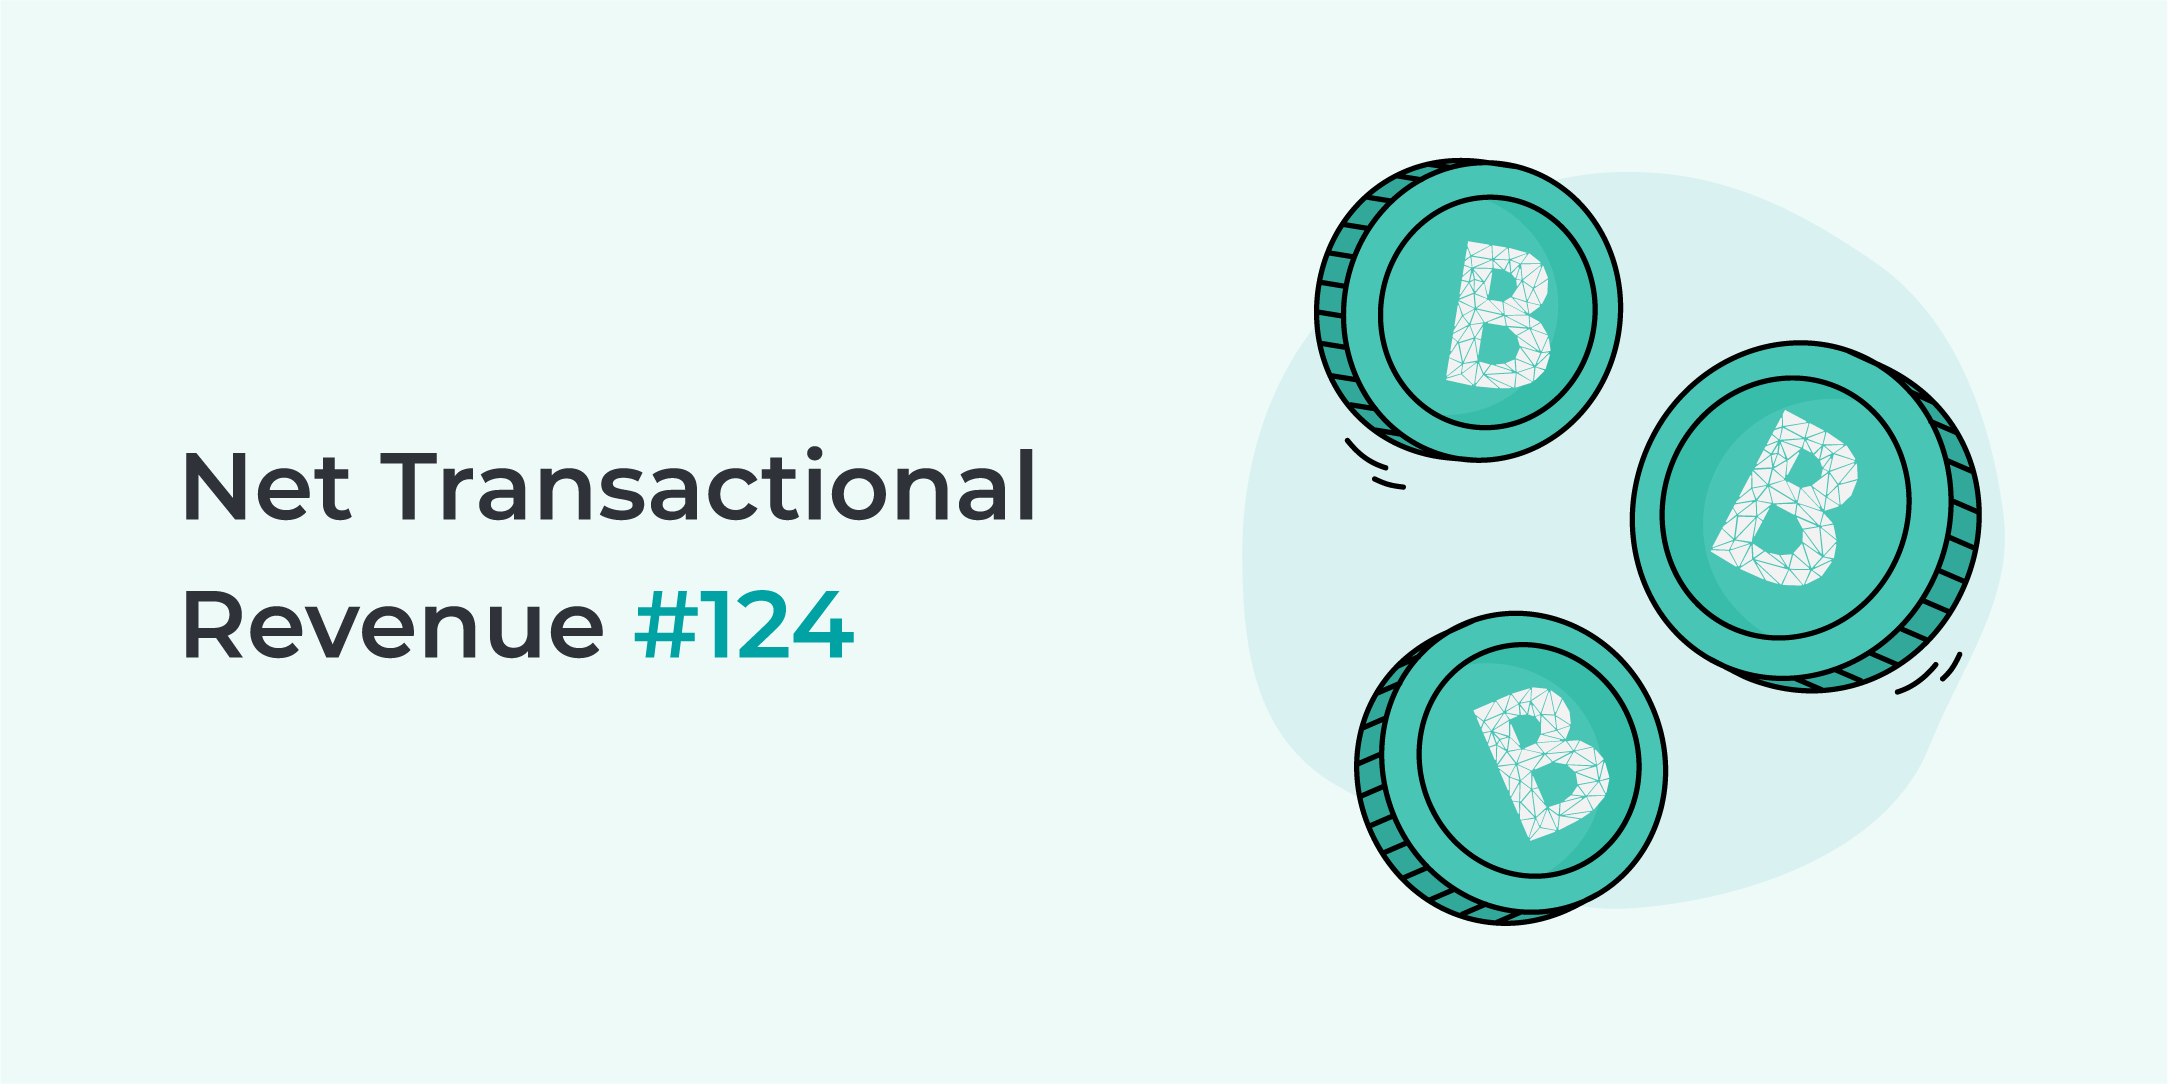 Bankera paid the 124th net transactional revenue